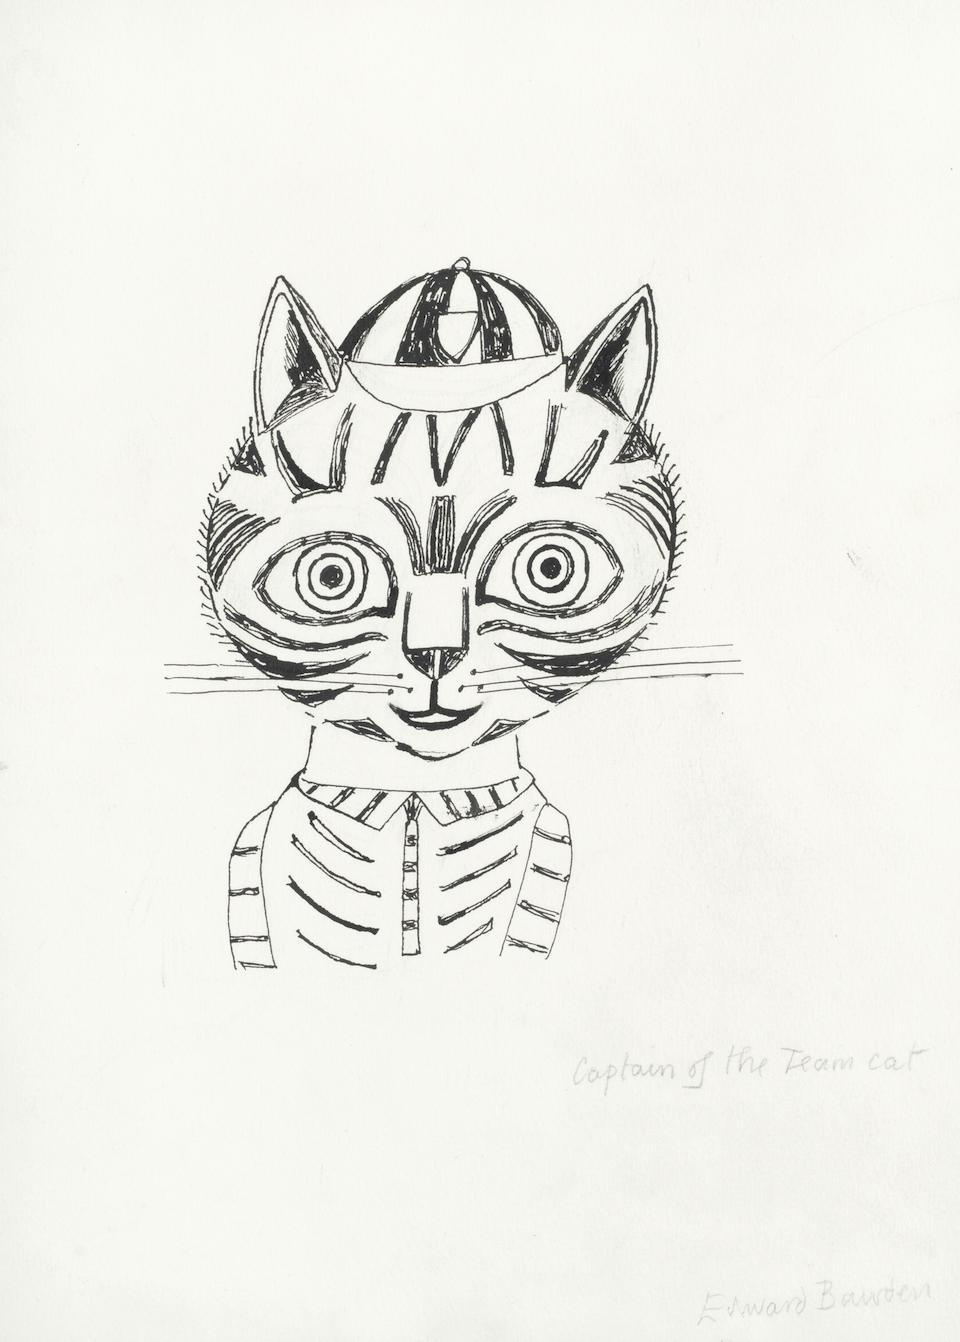 Edward Bawden drawing 'Captain of the Team Cat' pen and ink Modern British Art